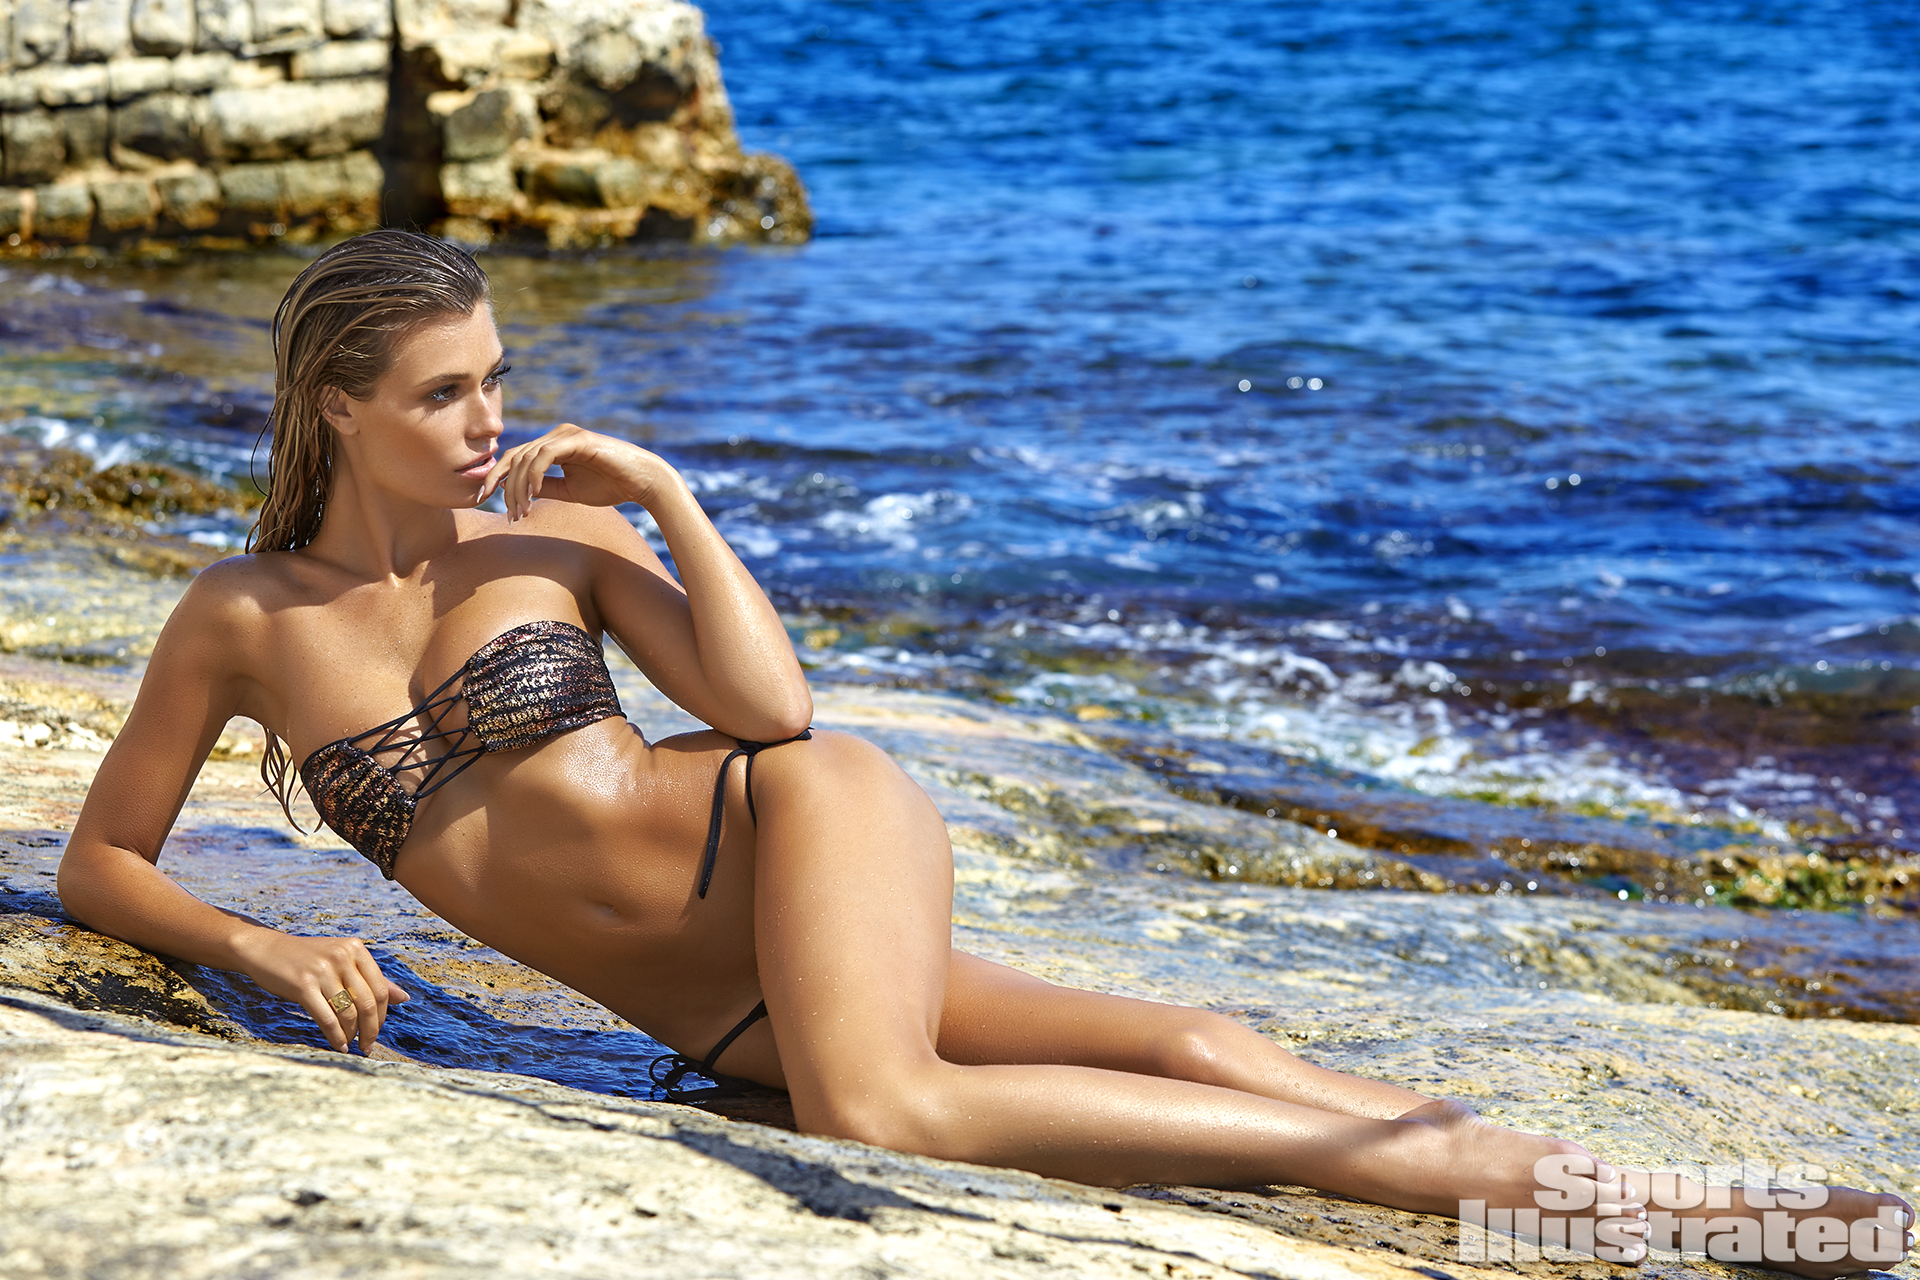 Samantha Hoopes was photographed by Ben Watts in Malta. Swimsuit by Elizabeth Southwood For Sauvage Swimwear.